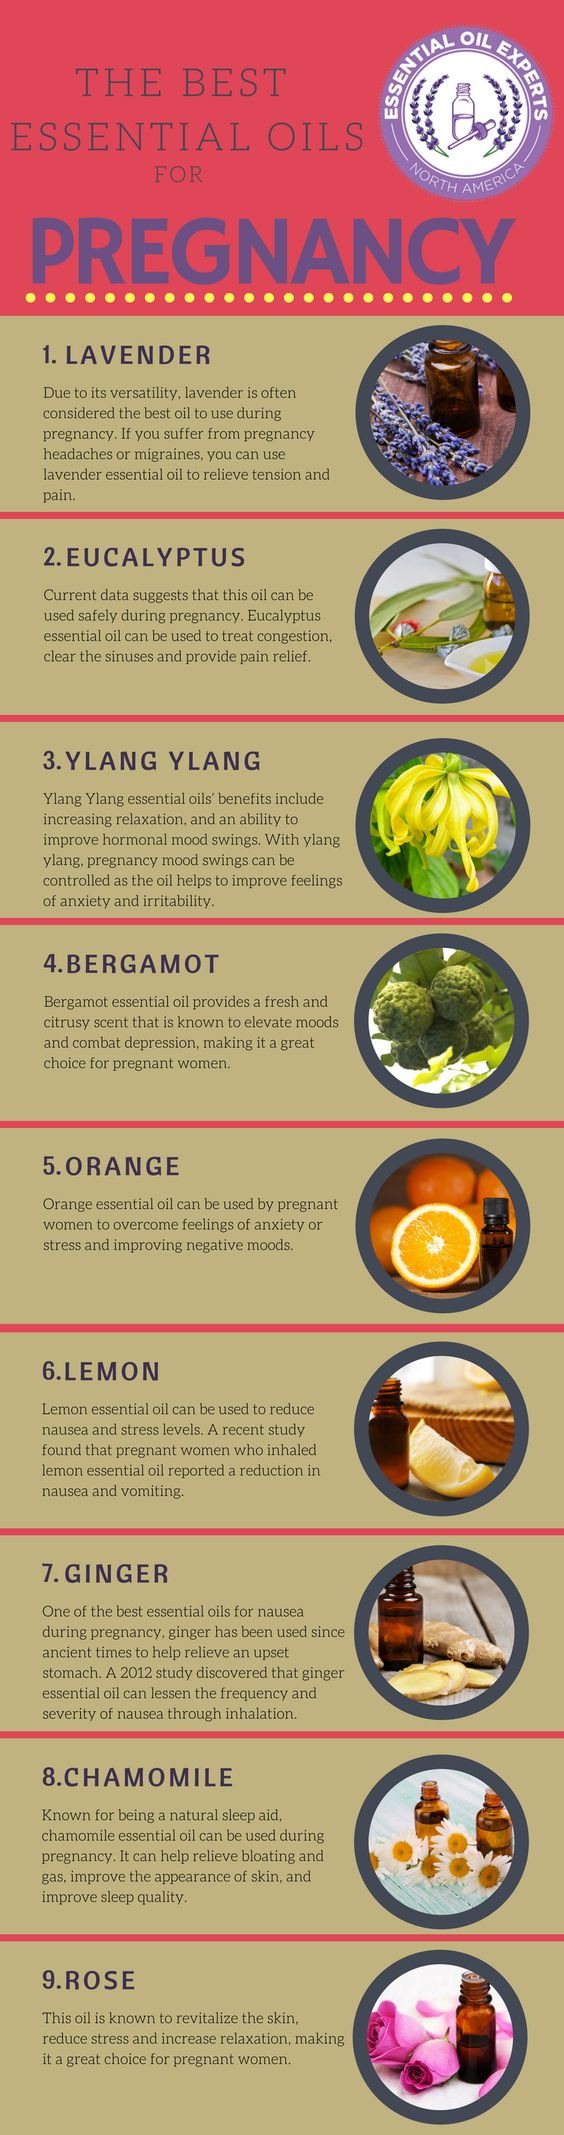 Best Essential Oils for Pregnancy: What Essential Oils to Avoid when Pregnant?